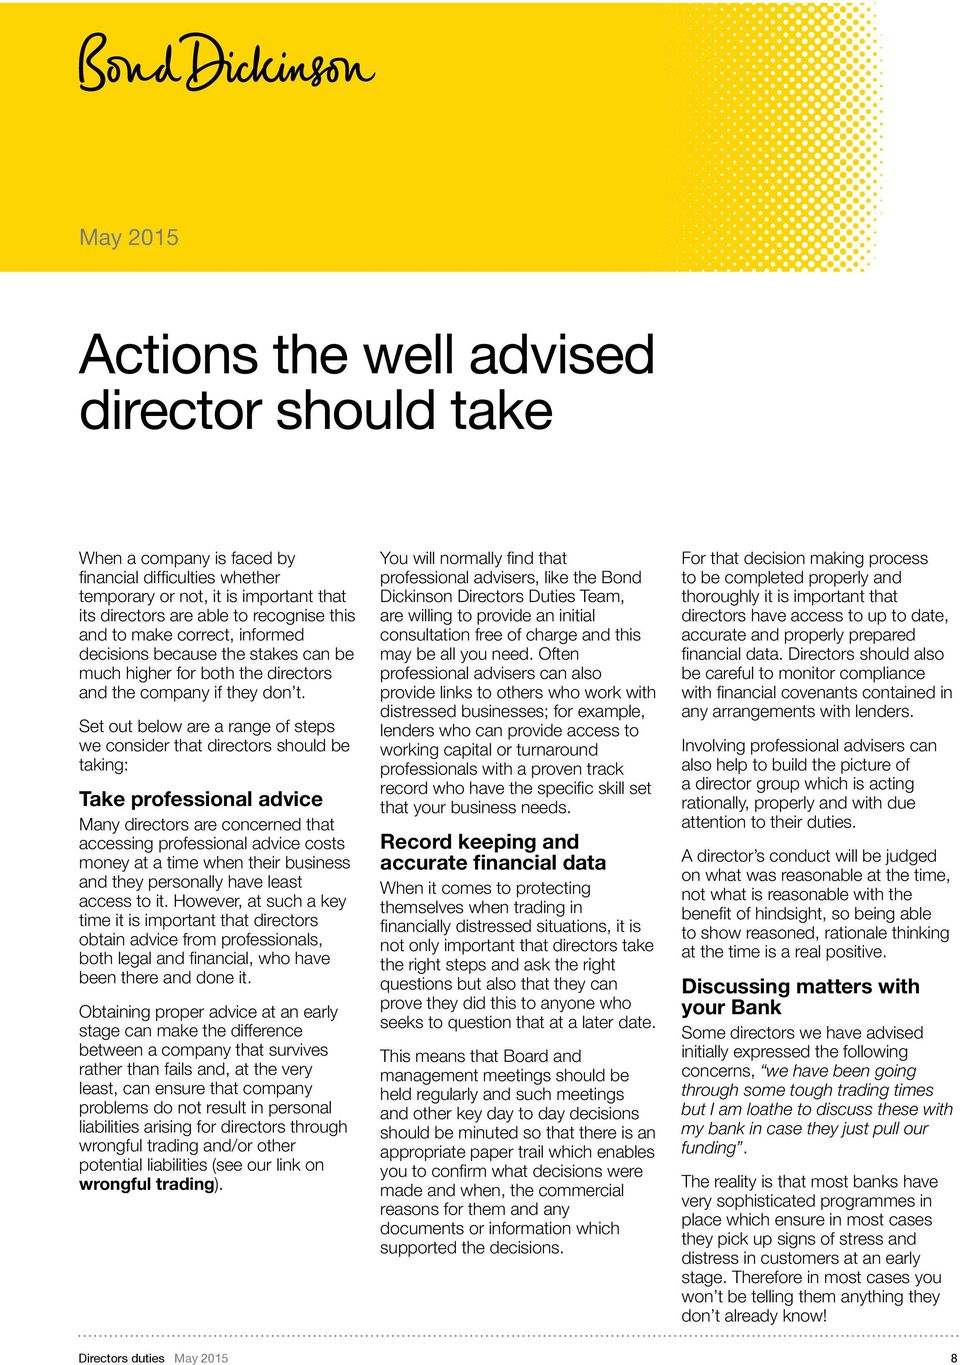 Set out below are a range of steps we consider that directors should be taking: Take professional advice Many directors are concerned that accessing professional advice costs money at a time when